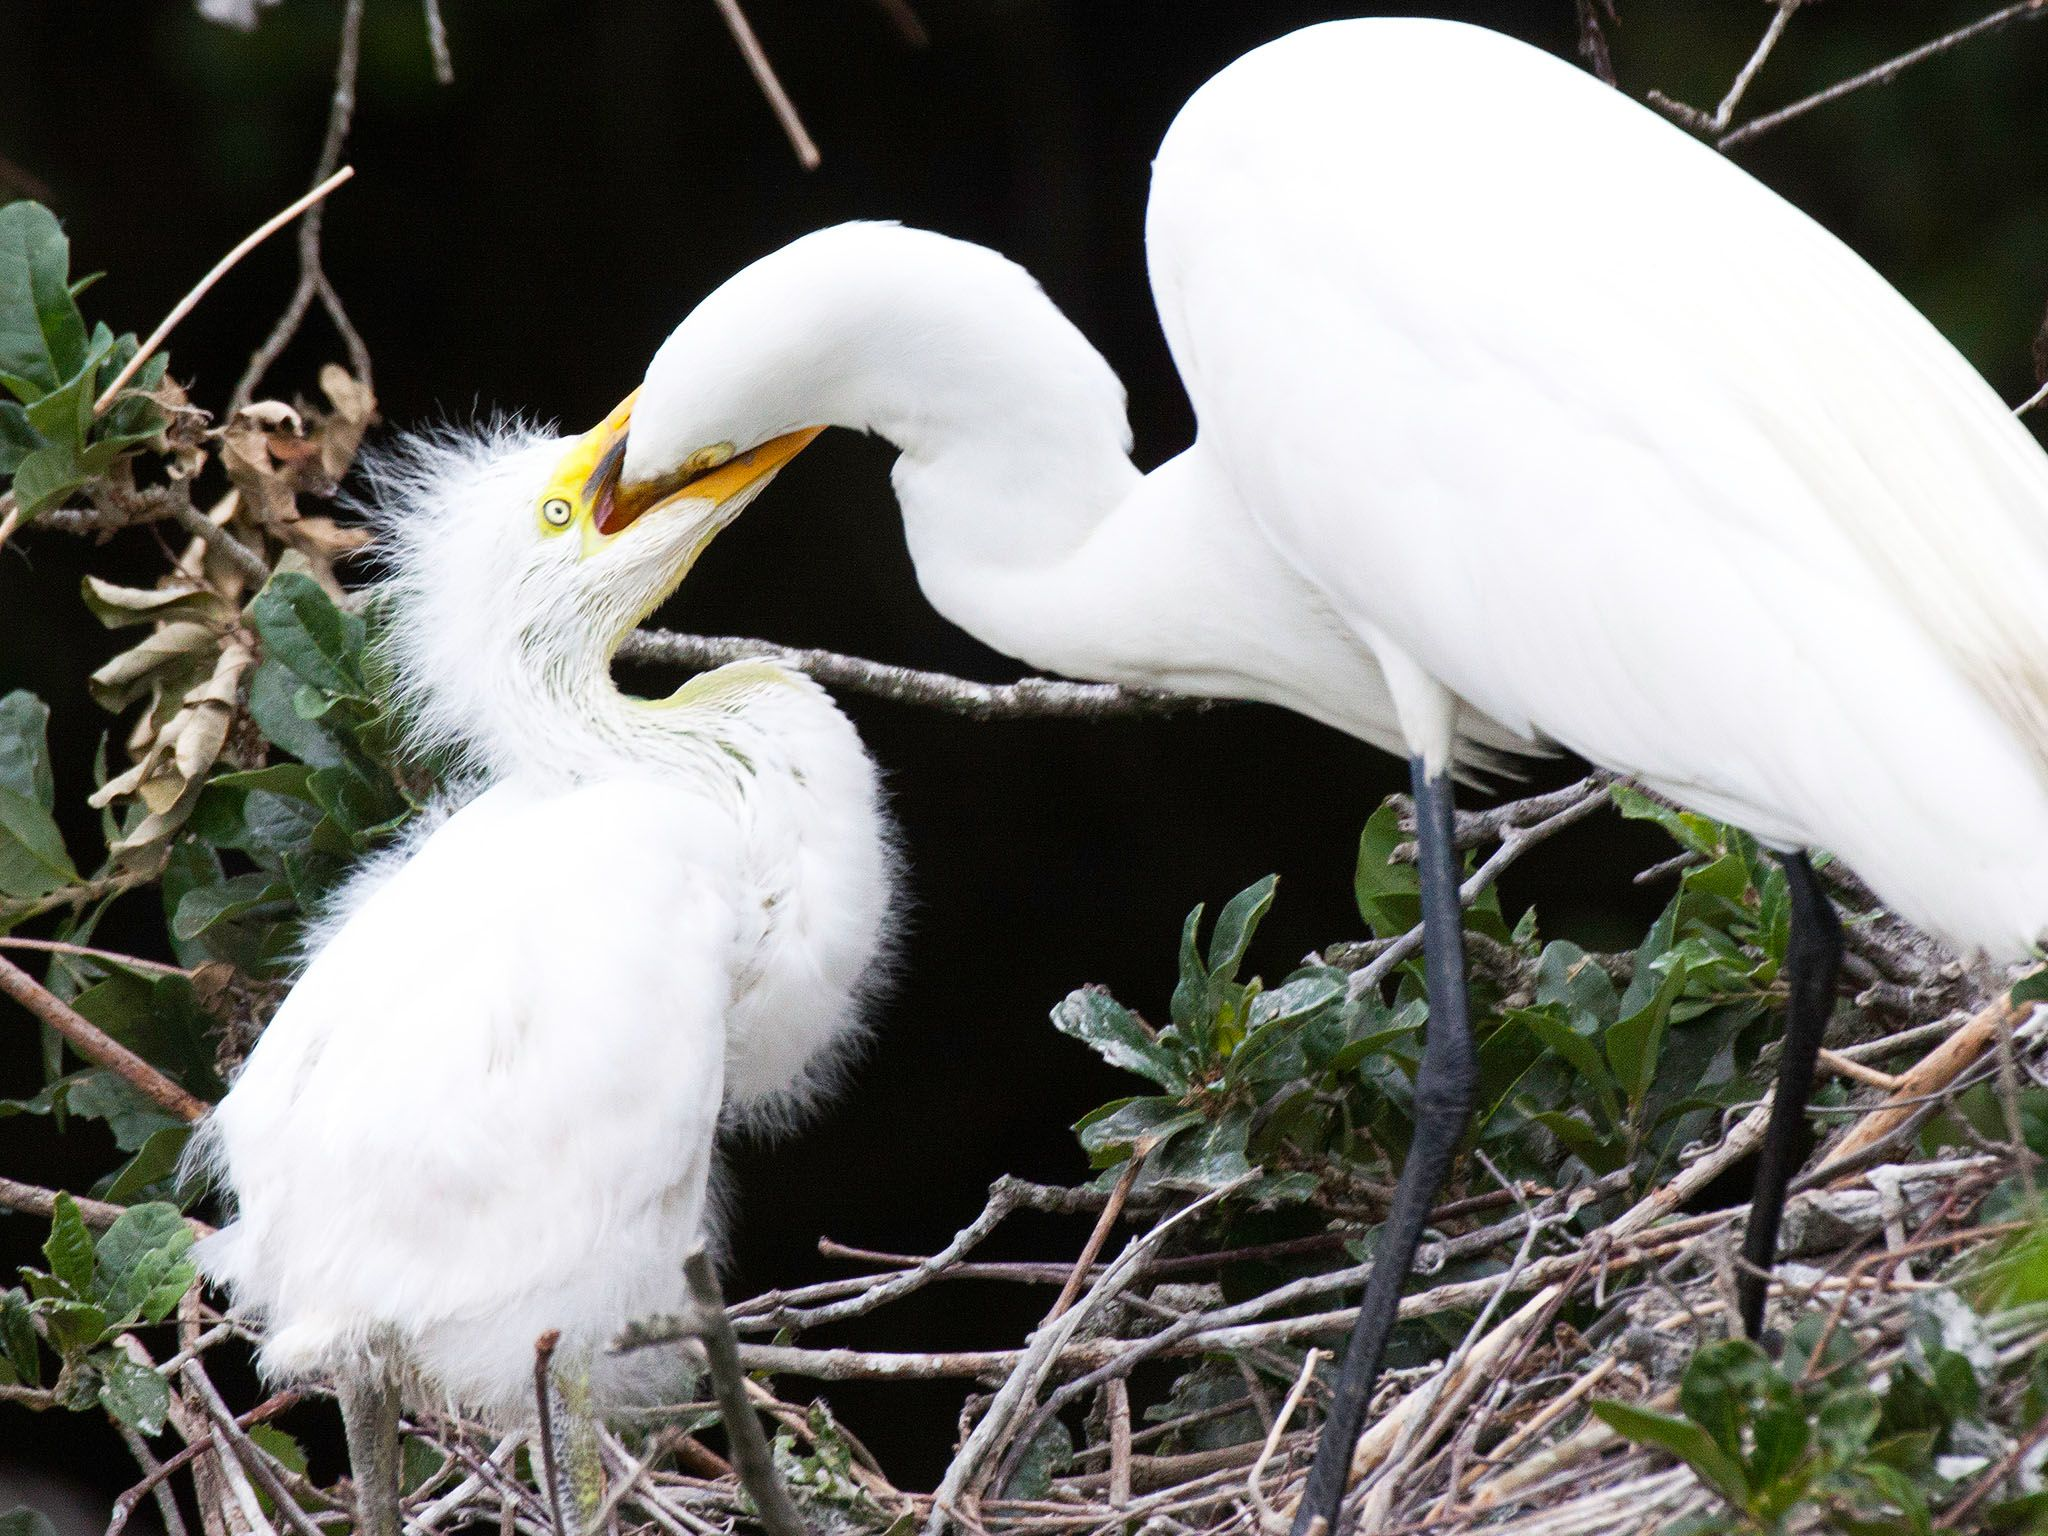 In Snowey egrets, the two oldest and strongest chicks often kill the younger and weaker one.  The... [Фото дня - Август 2015]